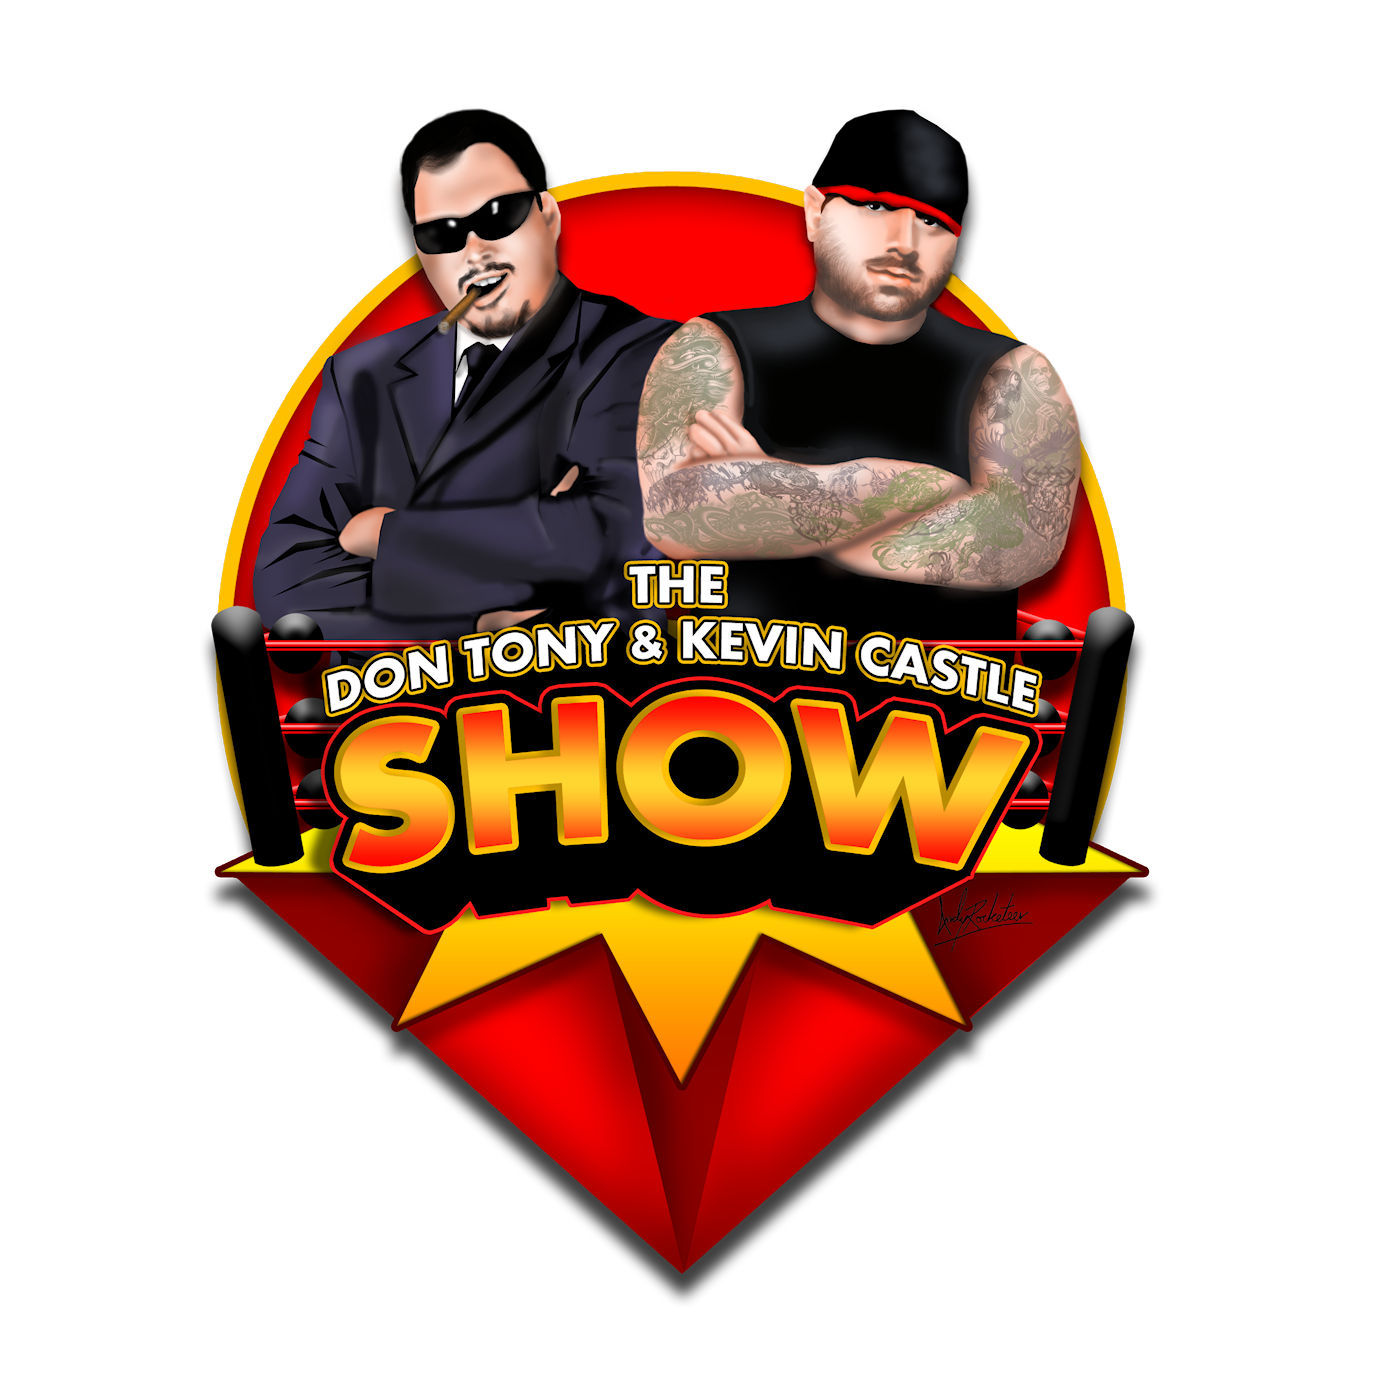 DON TONY AND KEVIN CASTLE SHOW logo